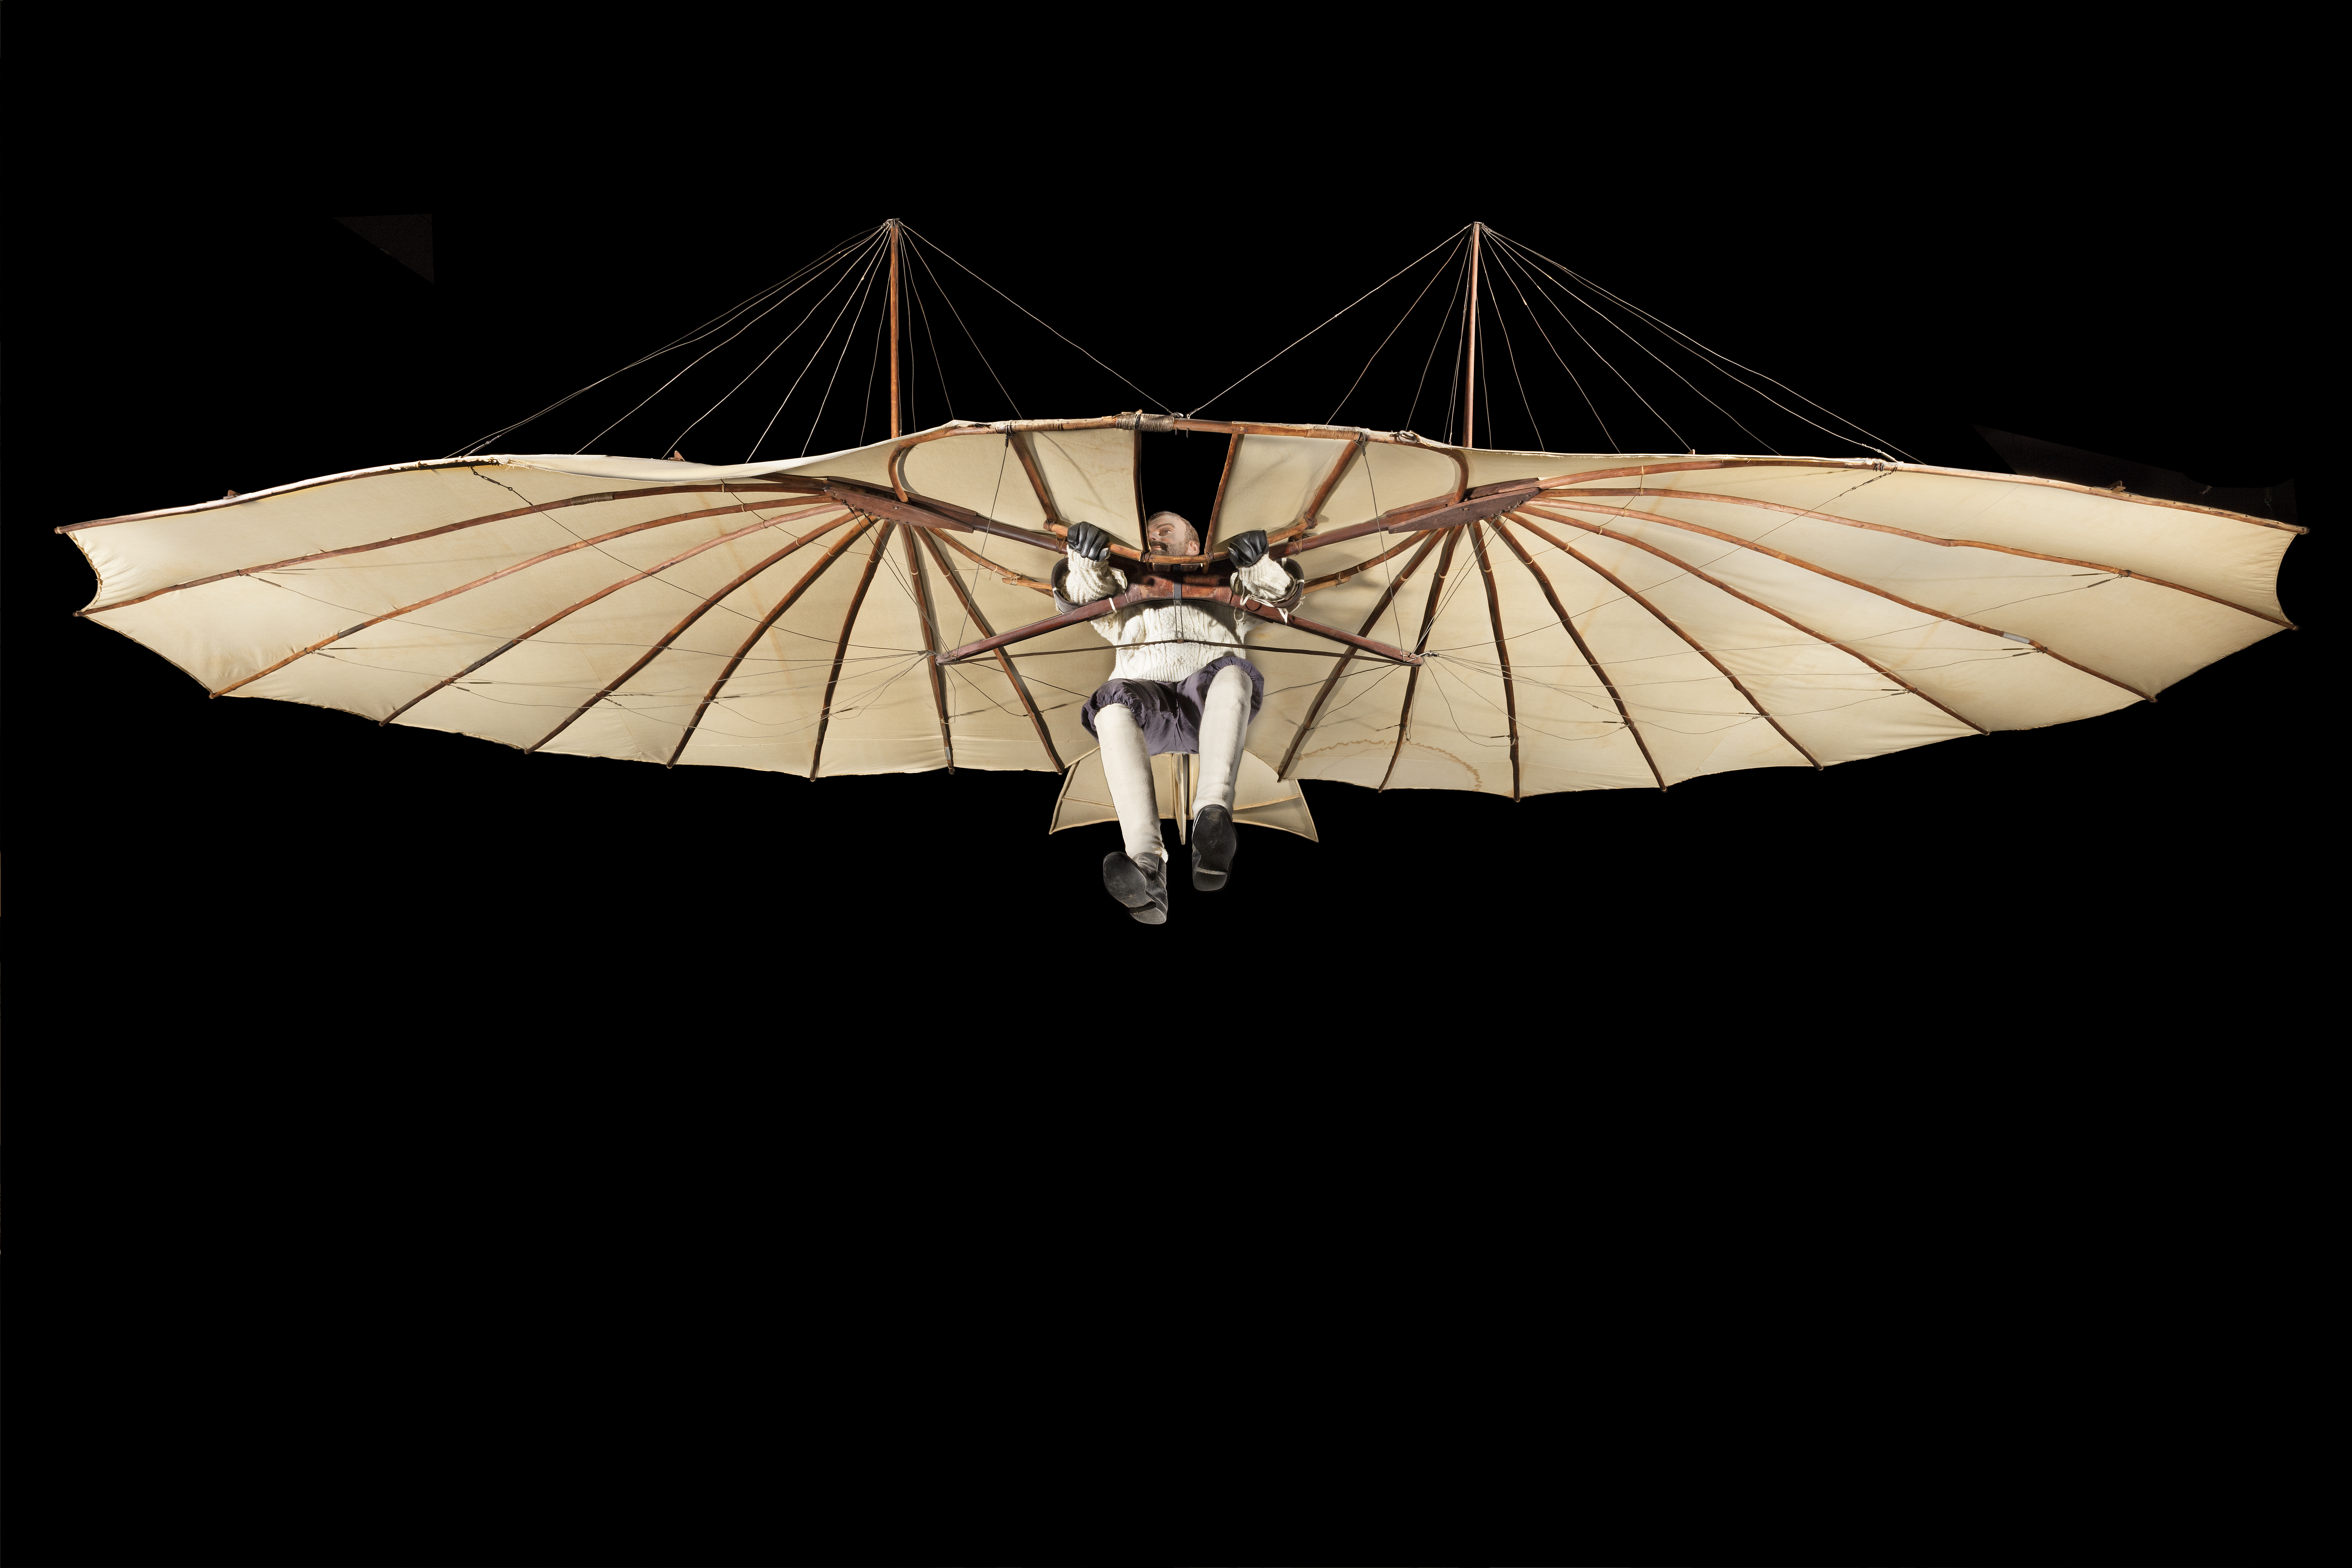 The Lilienthal Glider at the Museum